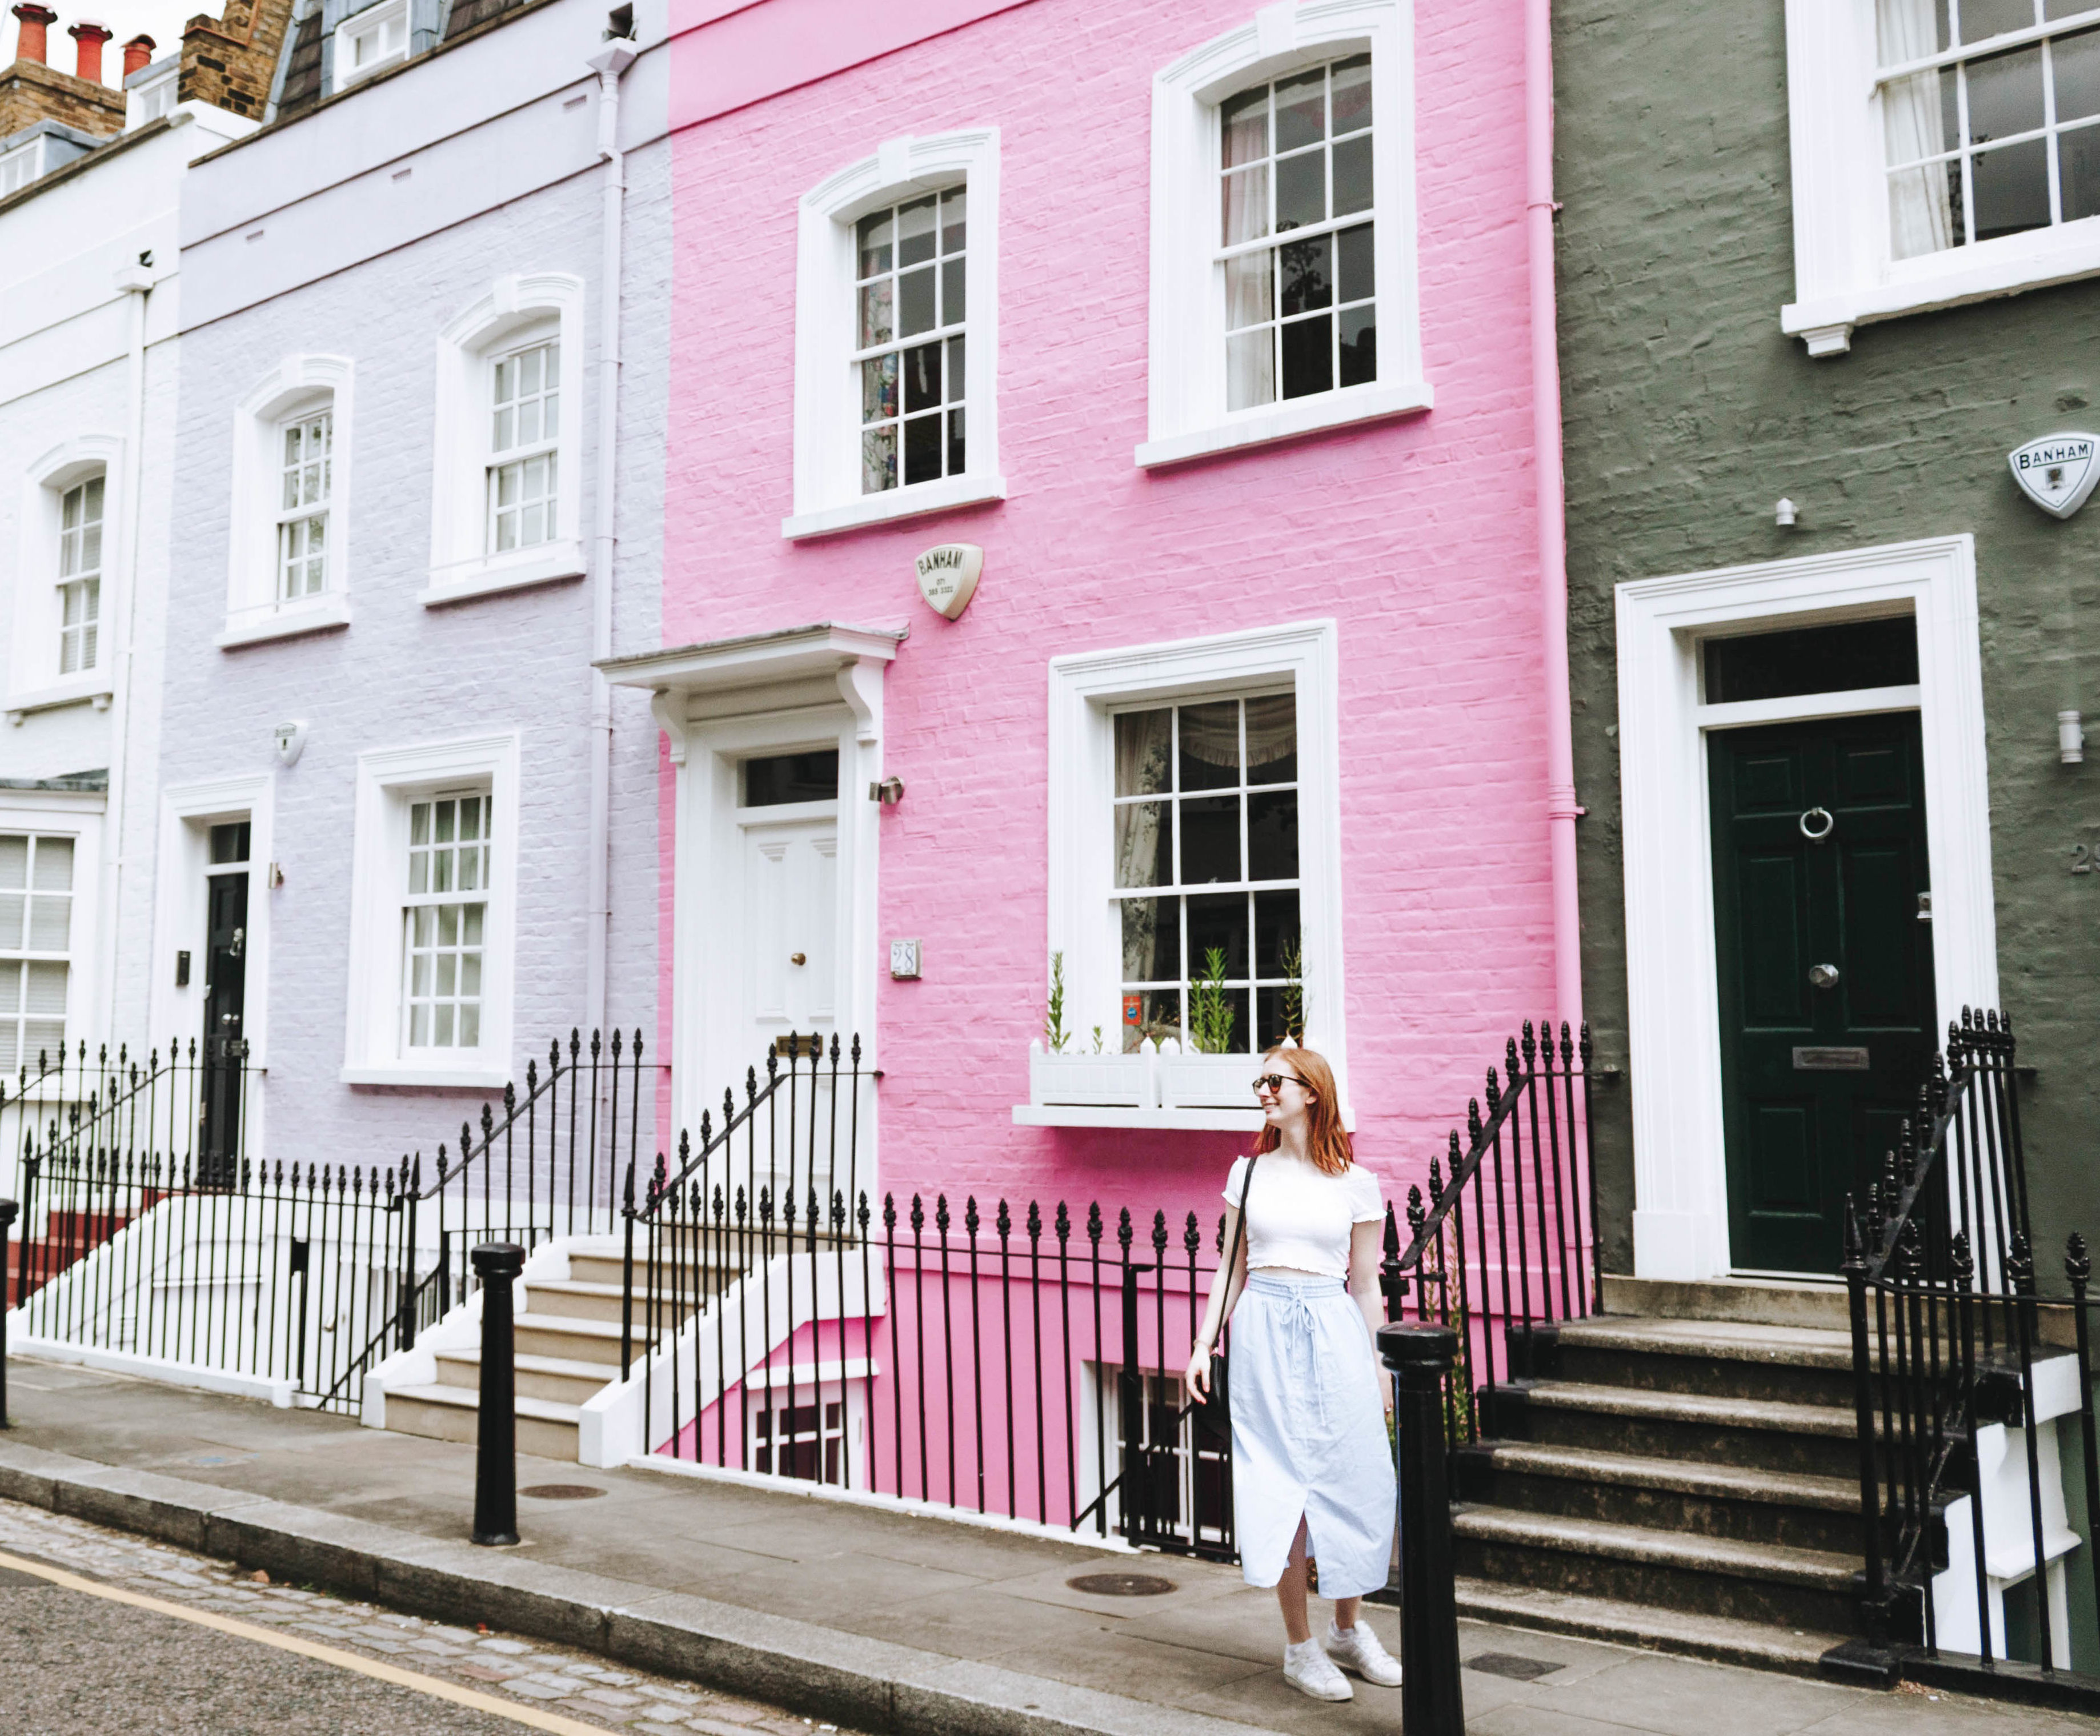 8 Colourful London Streets To Brighten Your Day - Gingersnap Travels